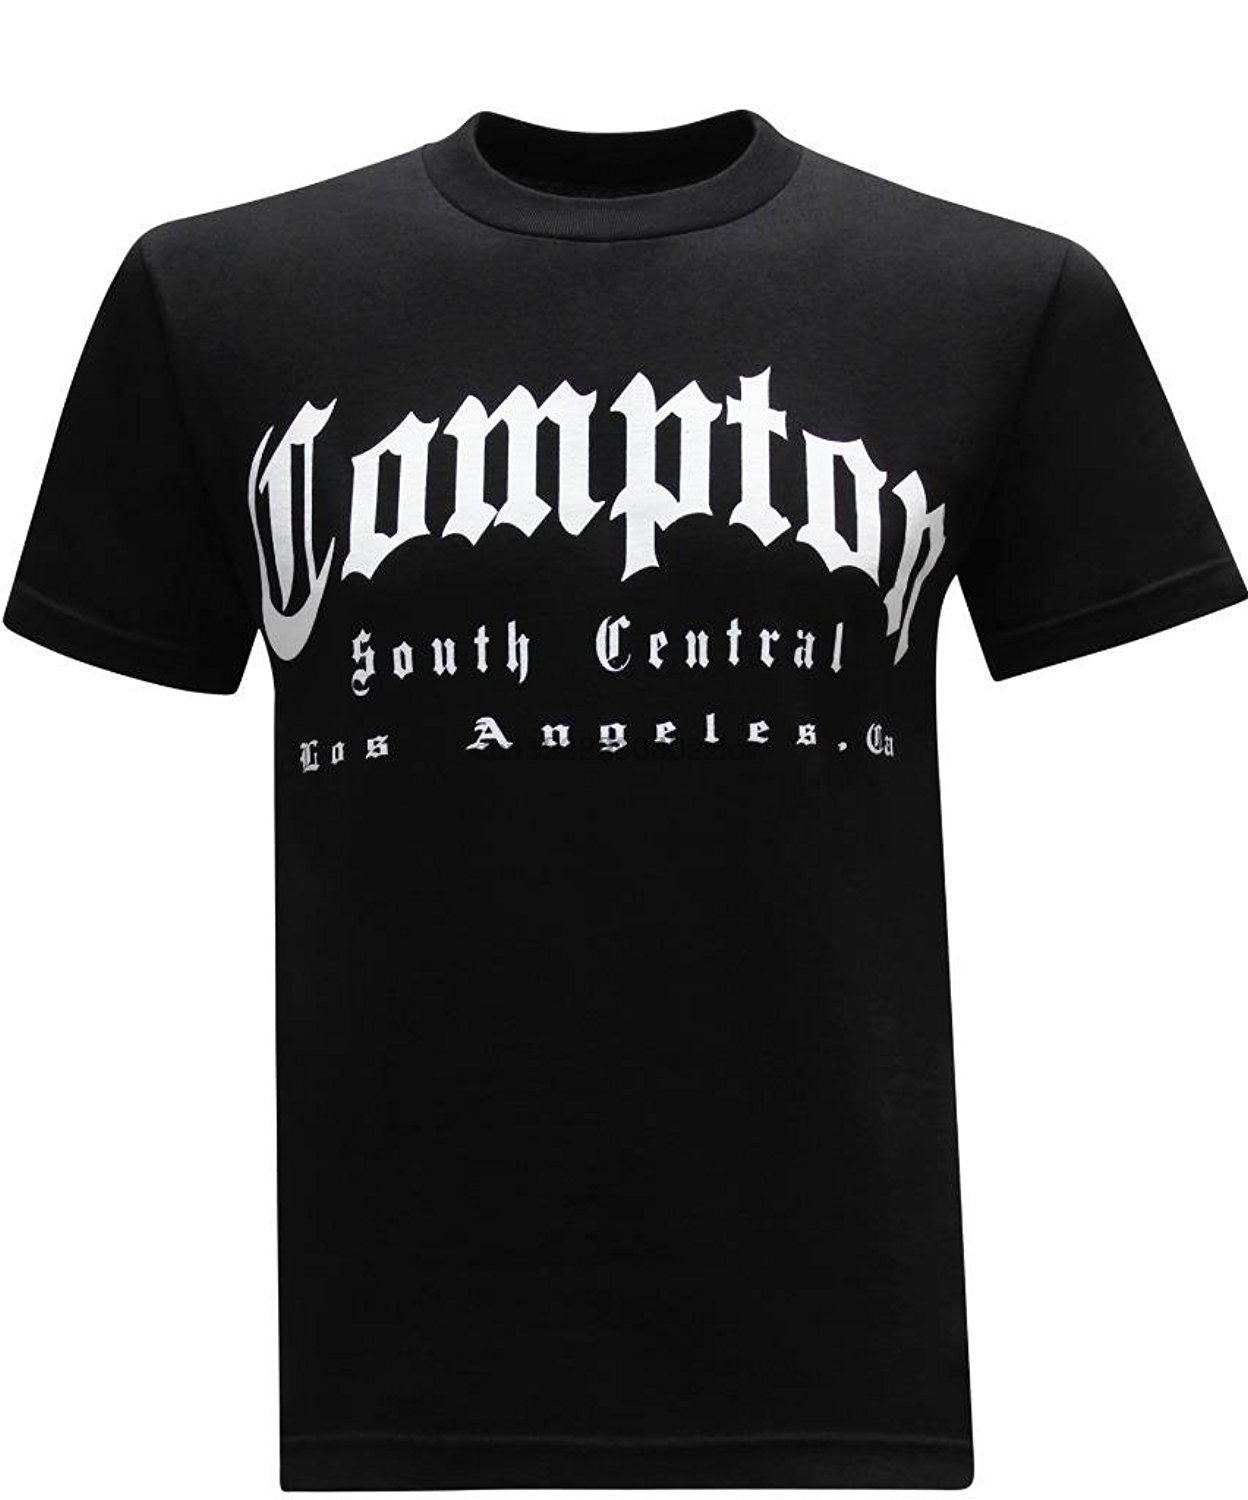 COMPTON T-shirt NWA 213 South Central Los Angeles CA Tee Adult Men Black New